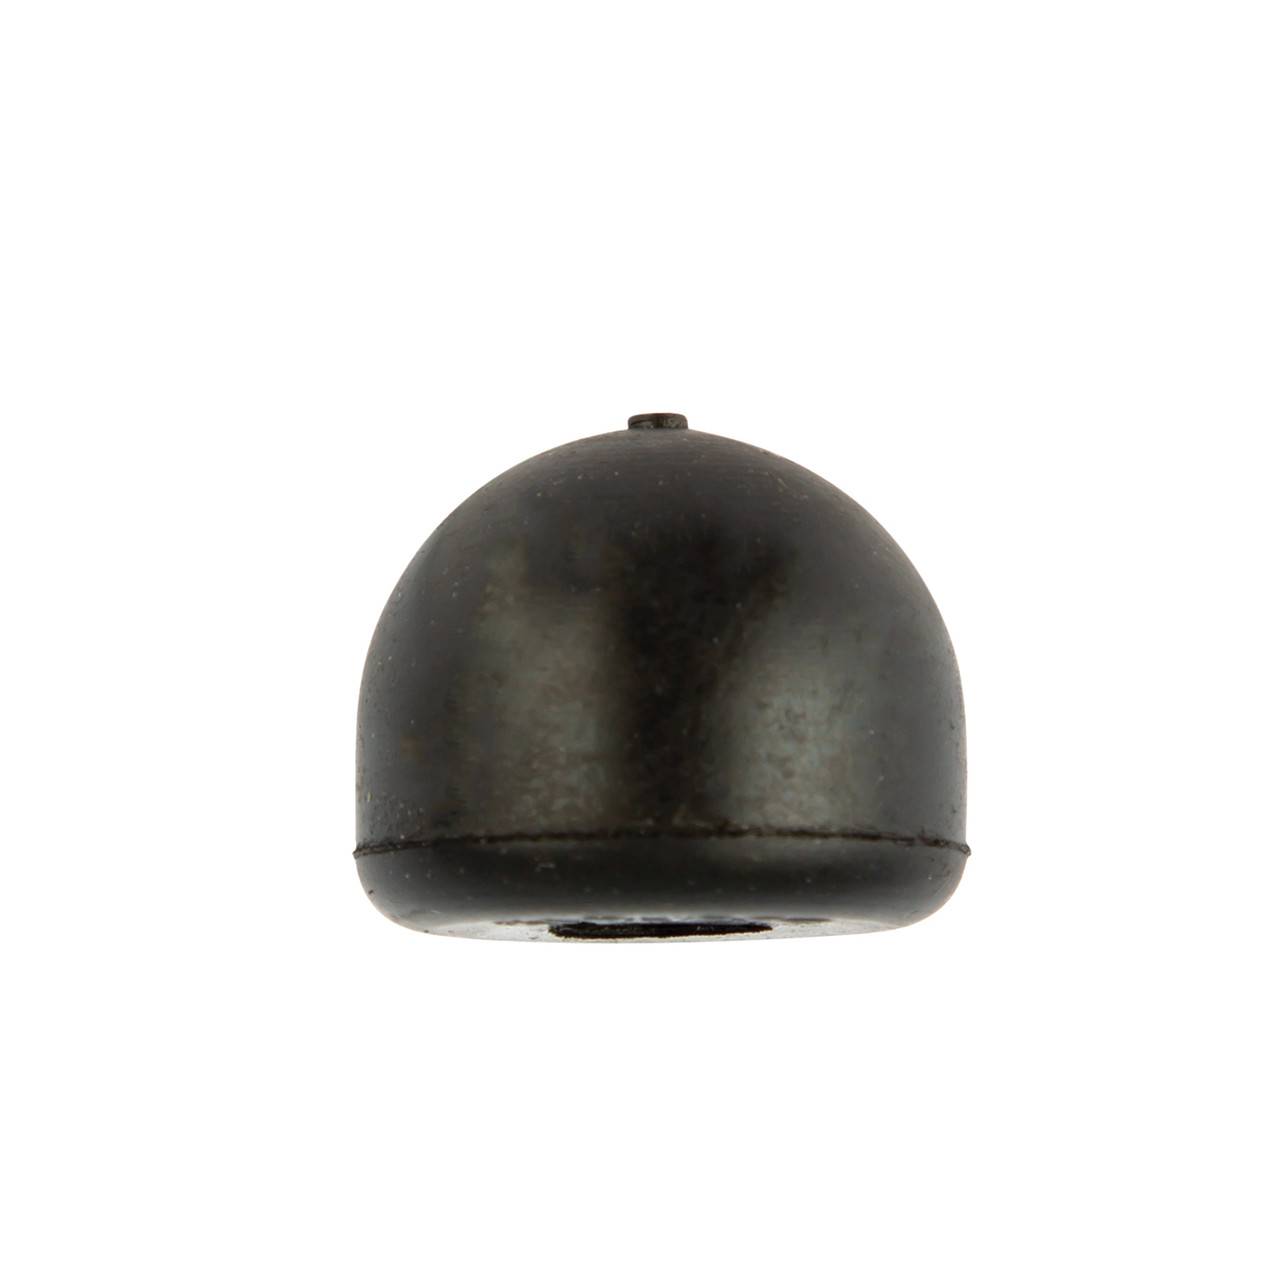 11367SR GUINEVERE® SMALL ROUND SANDER REPLACEMENT BULB